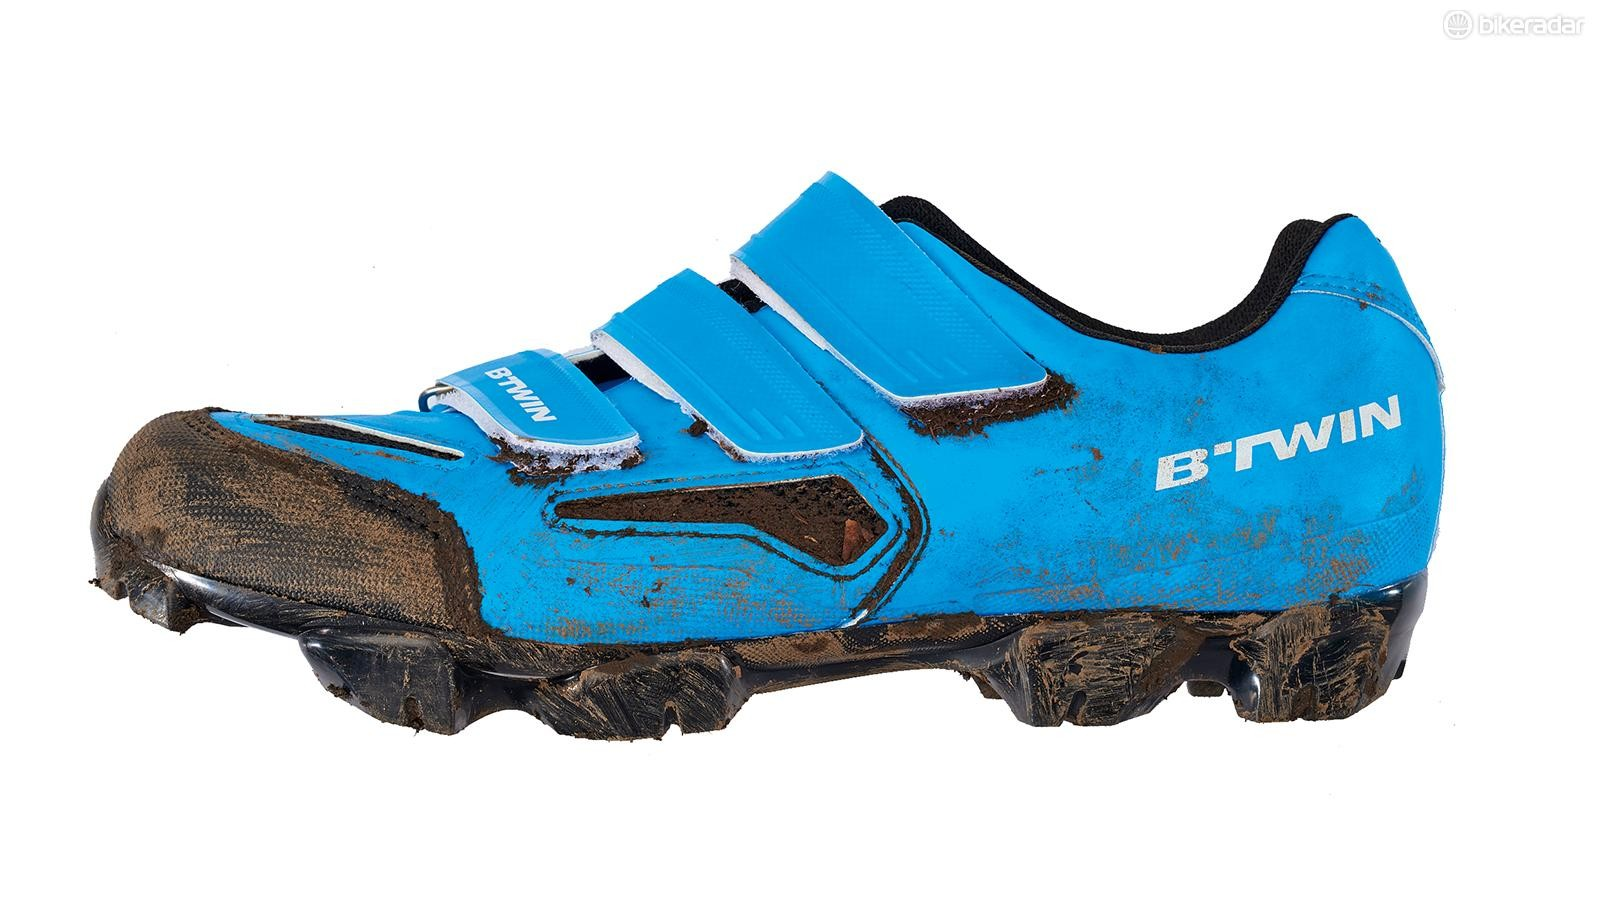 B'Twin's 500 cross-country shoe is a superb option for riders on a budget